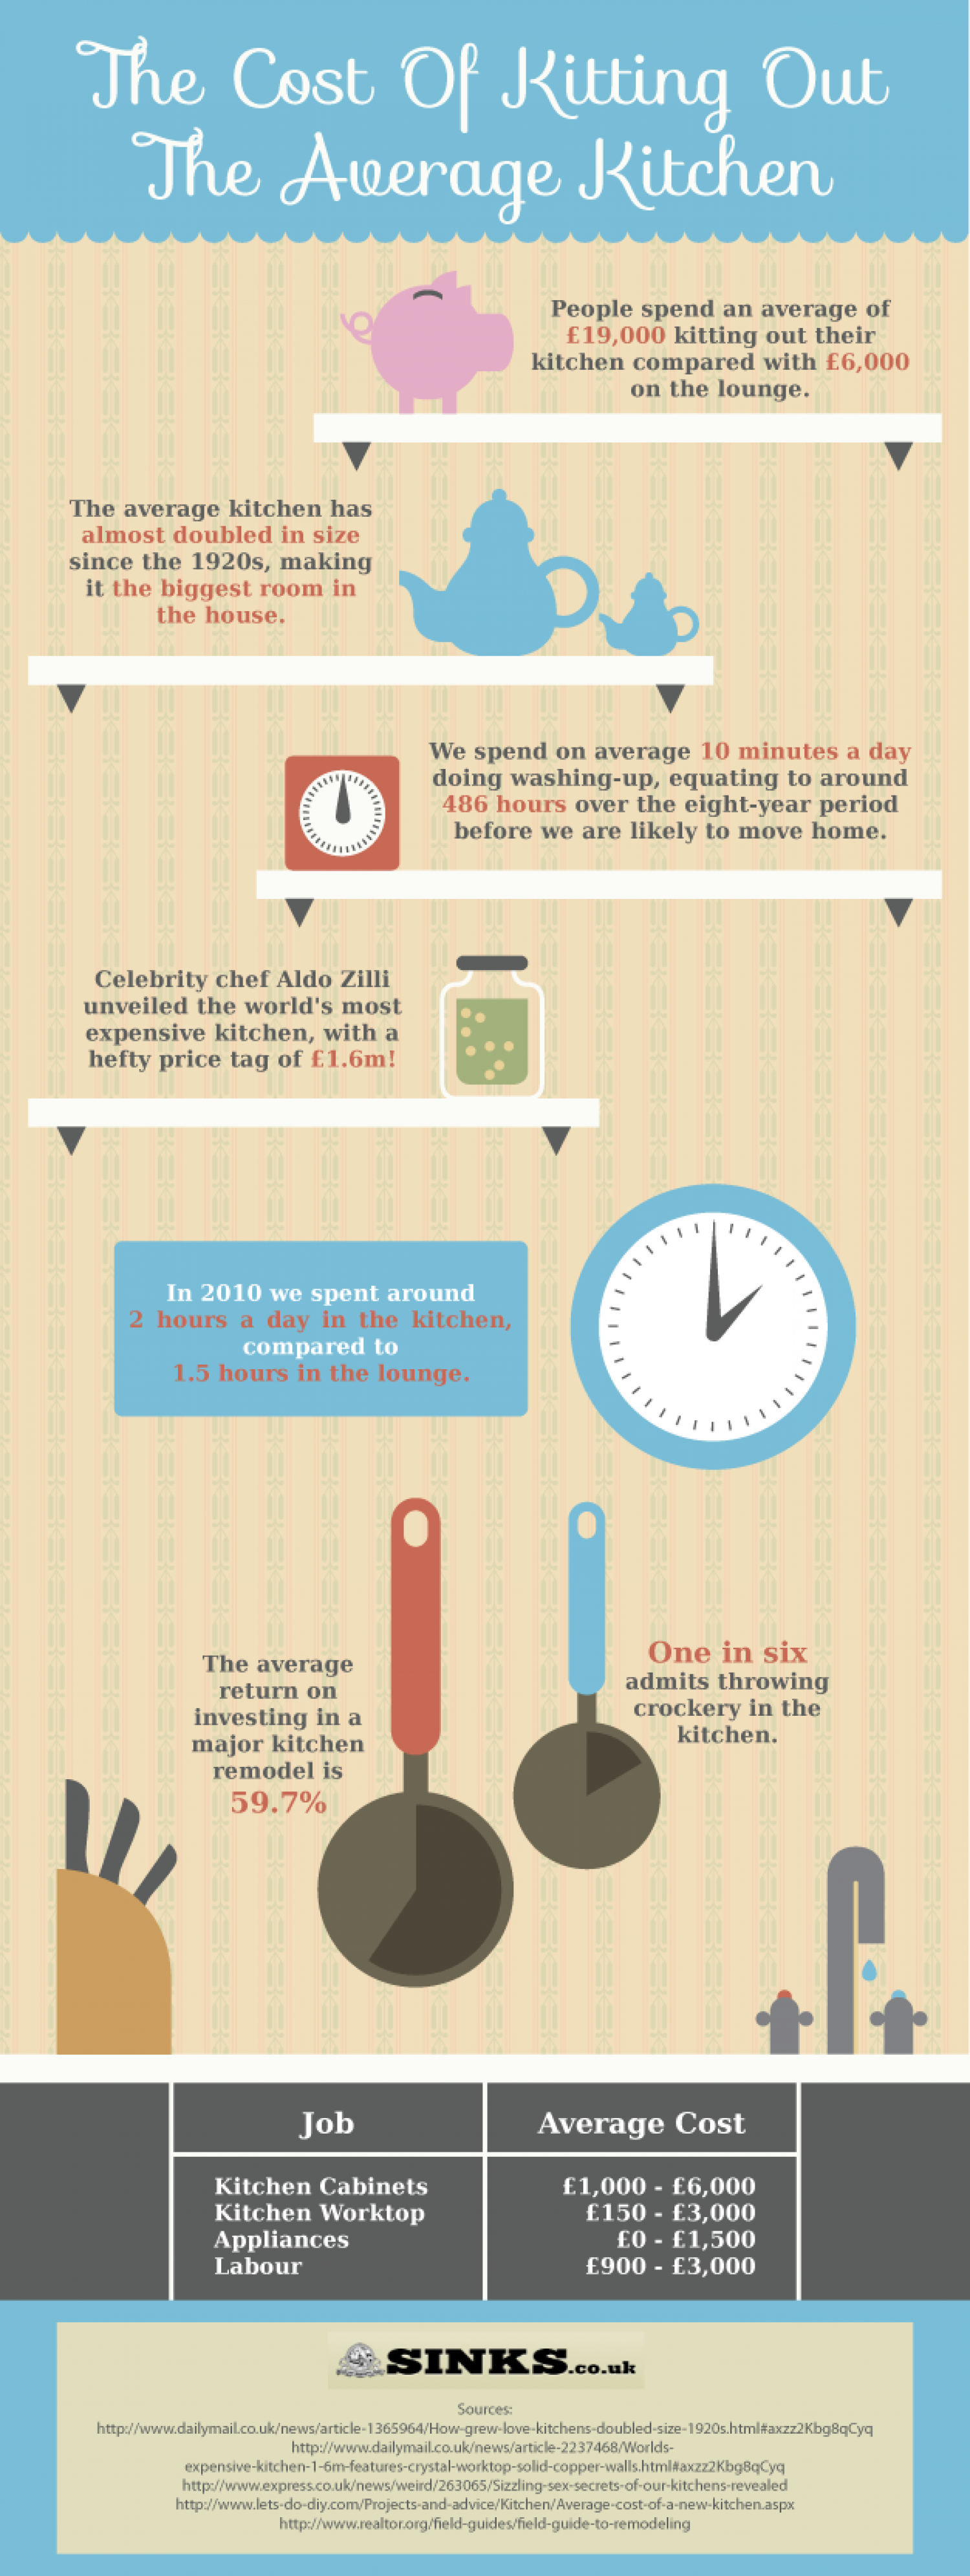 The Cost Of Kitting Out The Average Kitchen Infographic